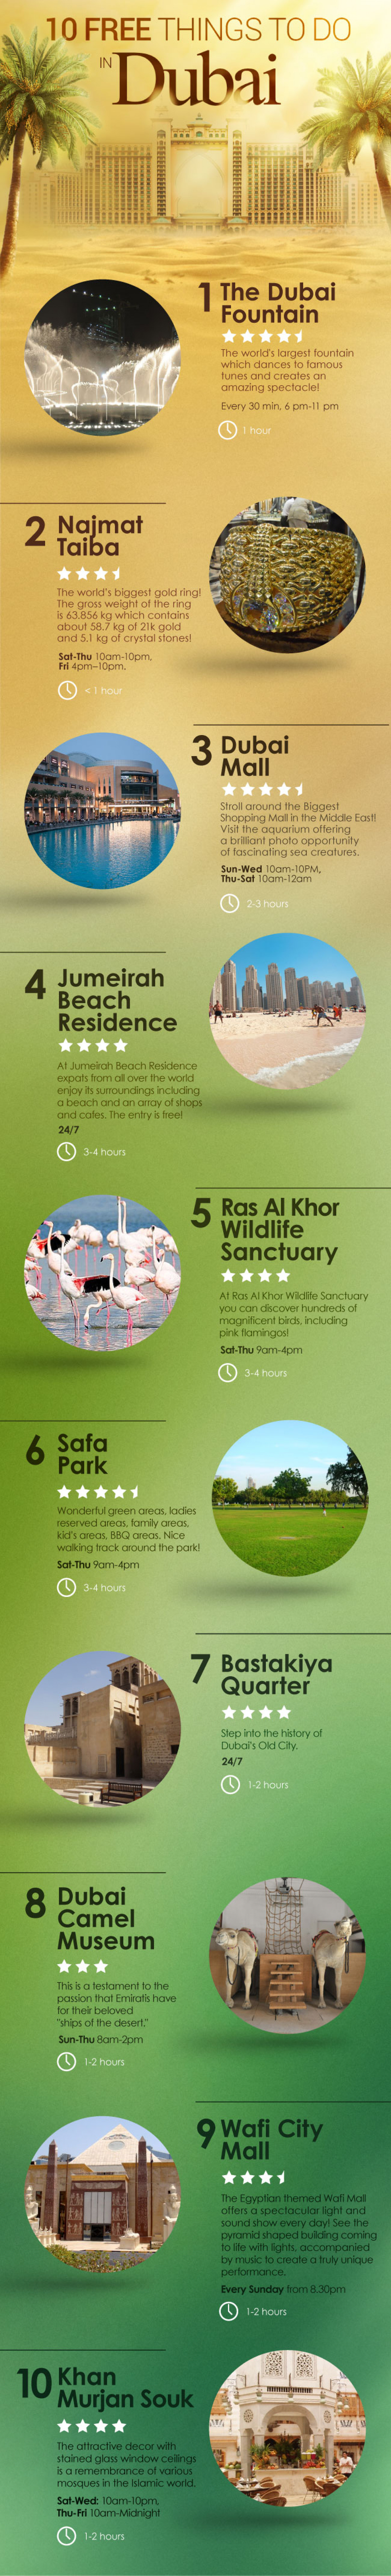 10 Free Things To Do In Dubai Infographic